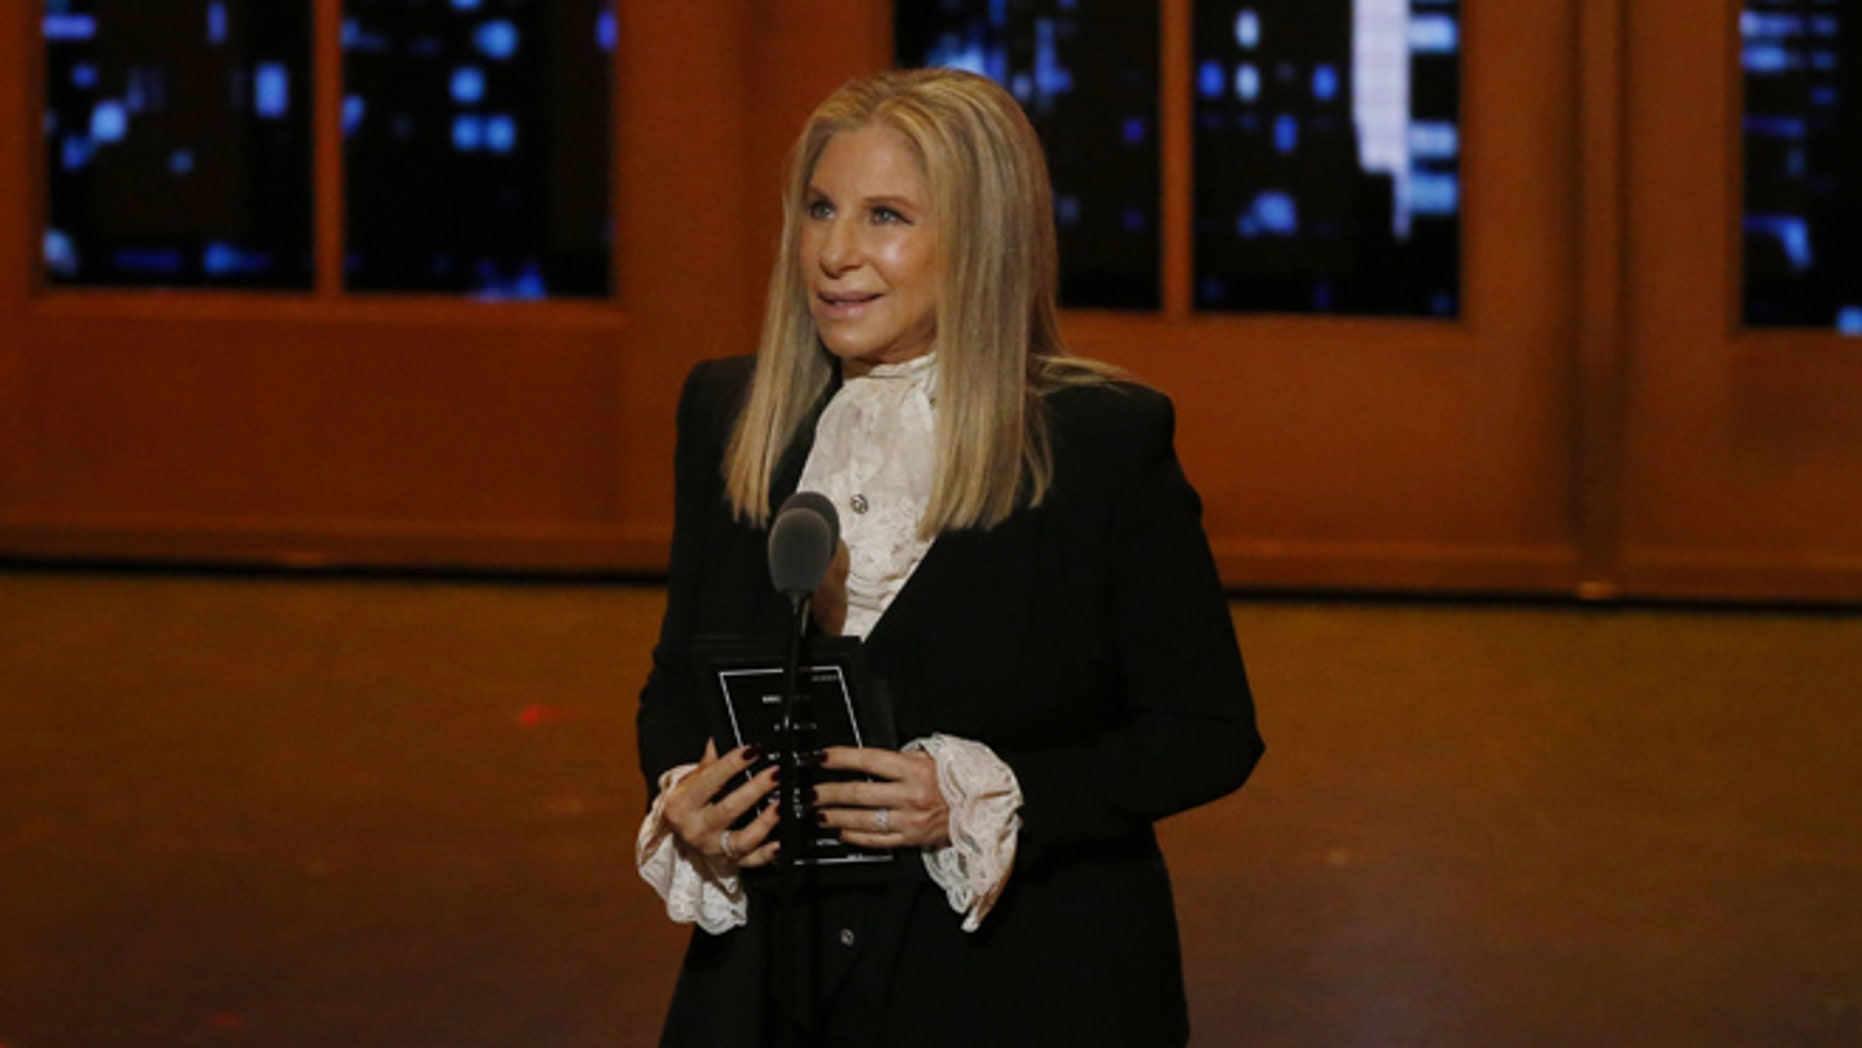 Barbra Streisand is mourning the loss of her dog.